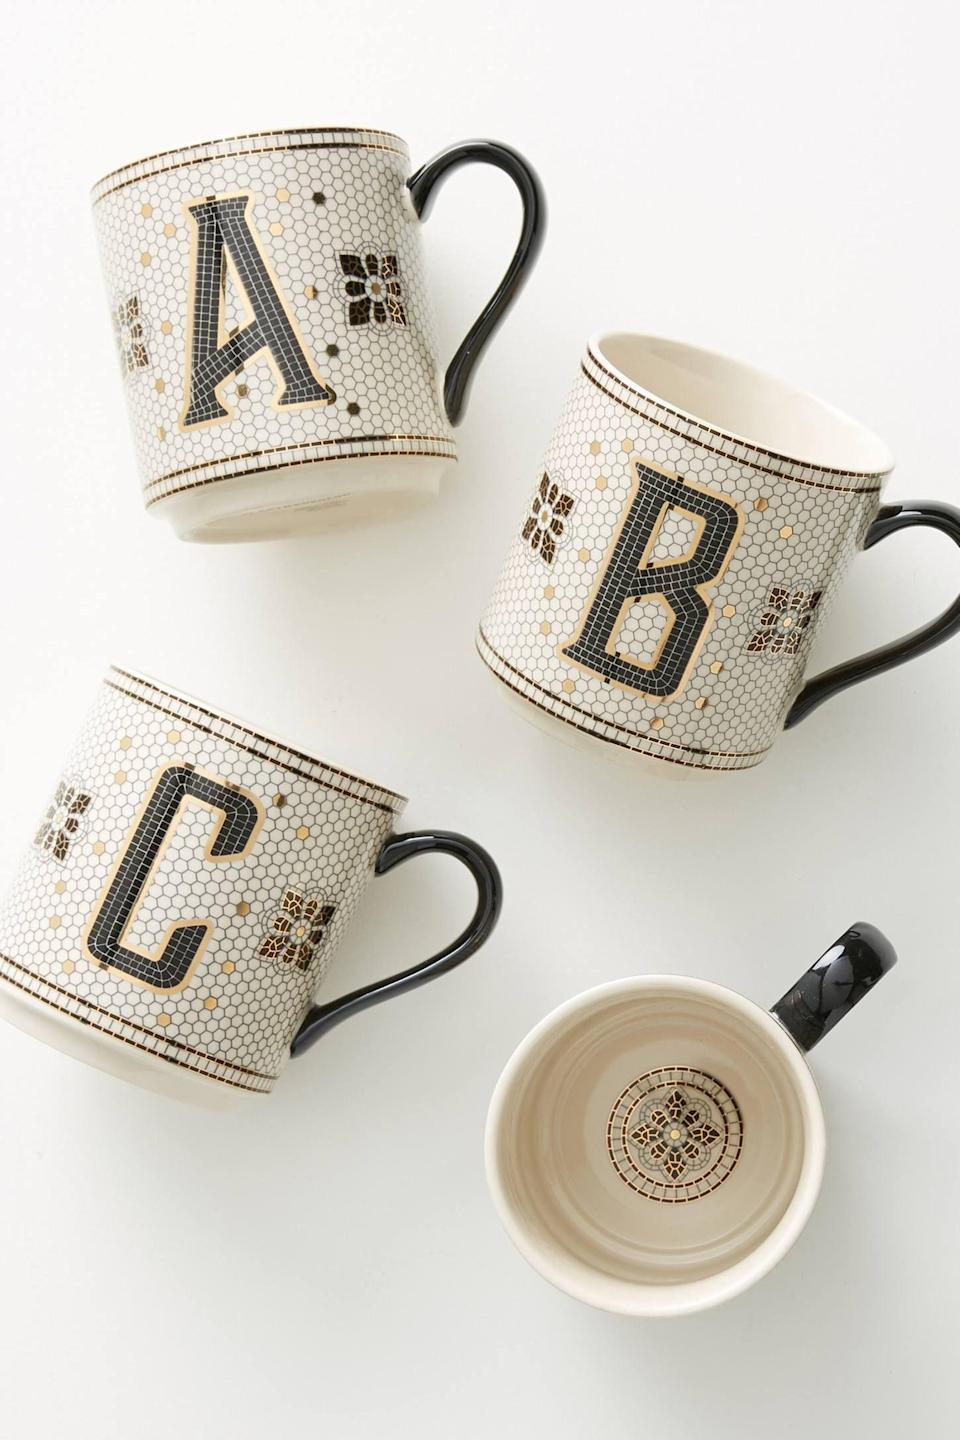 """<p><strong>Anthropologie</strong></p><p>anthropologie.com</p><p><strong>$10.00</strong></p><p><a href=""""https://go.redirectingat.com?id=74968X1596630&url=https%3A%2F%2Fwww.anthropologie.com%2Fshop%2Ftiled-margot-monogram-mug&sref=https%3A%2F%2Fwww.prevention.com%2Flife%2Fg30025627%2Fcheap-stocking-stuffers%2F"""" rel=""""nofollow noopener"""" target=""""_blank"""" data-ylk=""""slk:Shop Now"""" class=""""link rapid-noclick-resp"""">Shop Now</a></p><p>Is there such thing as too many mugs? We didn't think so, either! Anthropologie is chock filled with <a href=""""https://go.redirectingat.com?id=74968X1596630&url=https%3A%2F%2Fwww.anthropologie.com%2Fshop%2Fmonogram-mug&sref=https%3A%2F%2Fwww.prevention.com%2Flife%2Fg30025627%2Fcheap-stocking-stuffers%2F"""" rel=""""nofollow noopener"""" target=""""_blank"""" data-ylk=""""slk:adorable mugs"""" class=""""link rapid-noclick-resp"""">adorable mugs</a> that have become our go-to stocking stuffers for years, but this Tiled Margot pick is especially gift-worthy. They ooze chicness and that monogram feature gives is a personal edge that we love. <br></p>"""